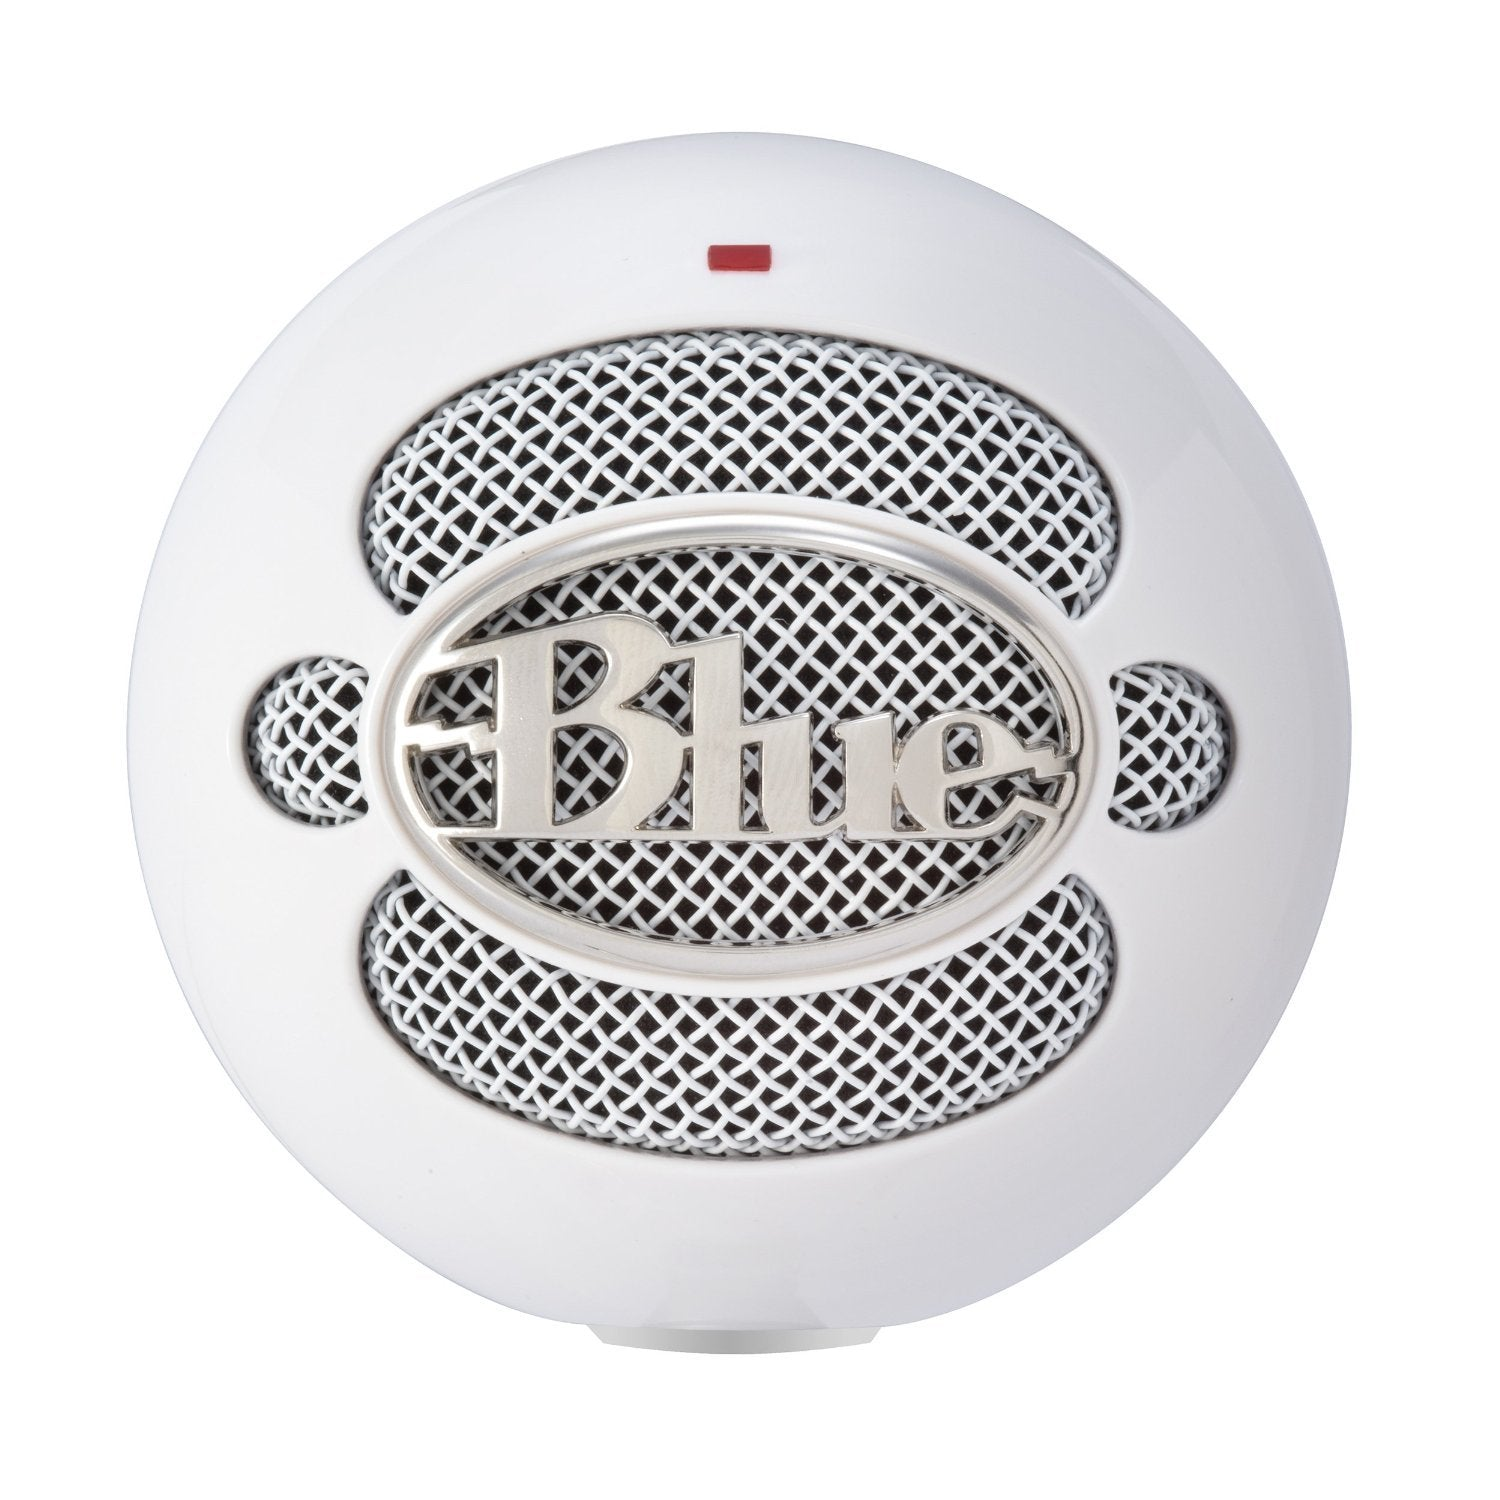 Blue Microphones Snowball iCE USB Condenser Microphone (White)